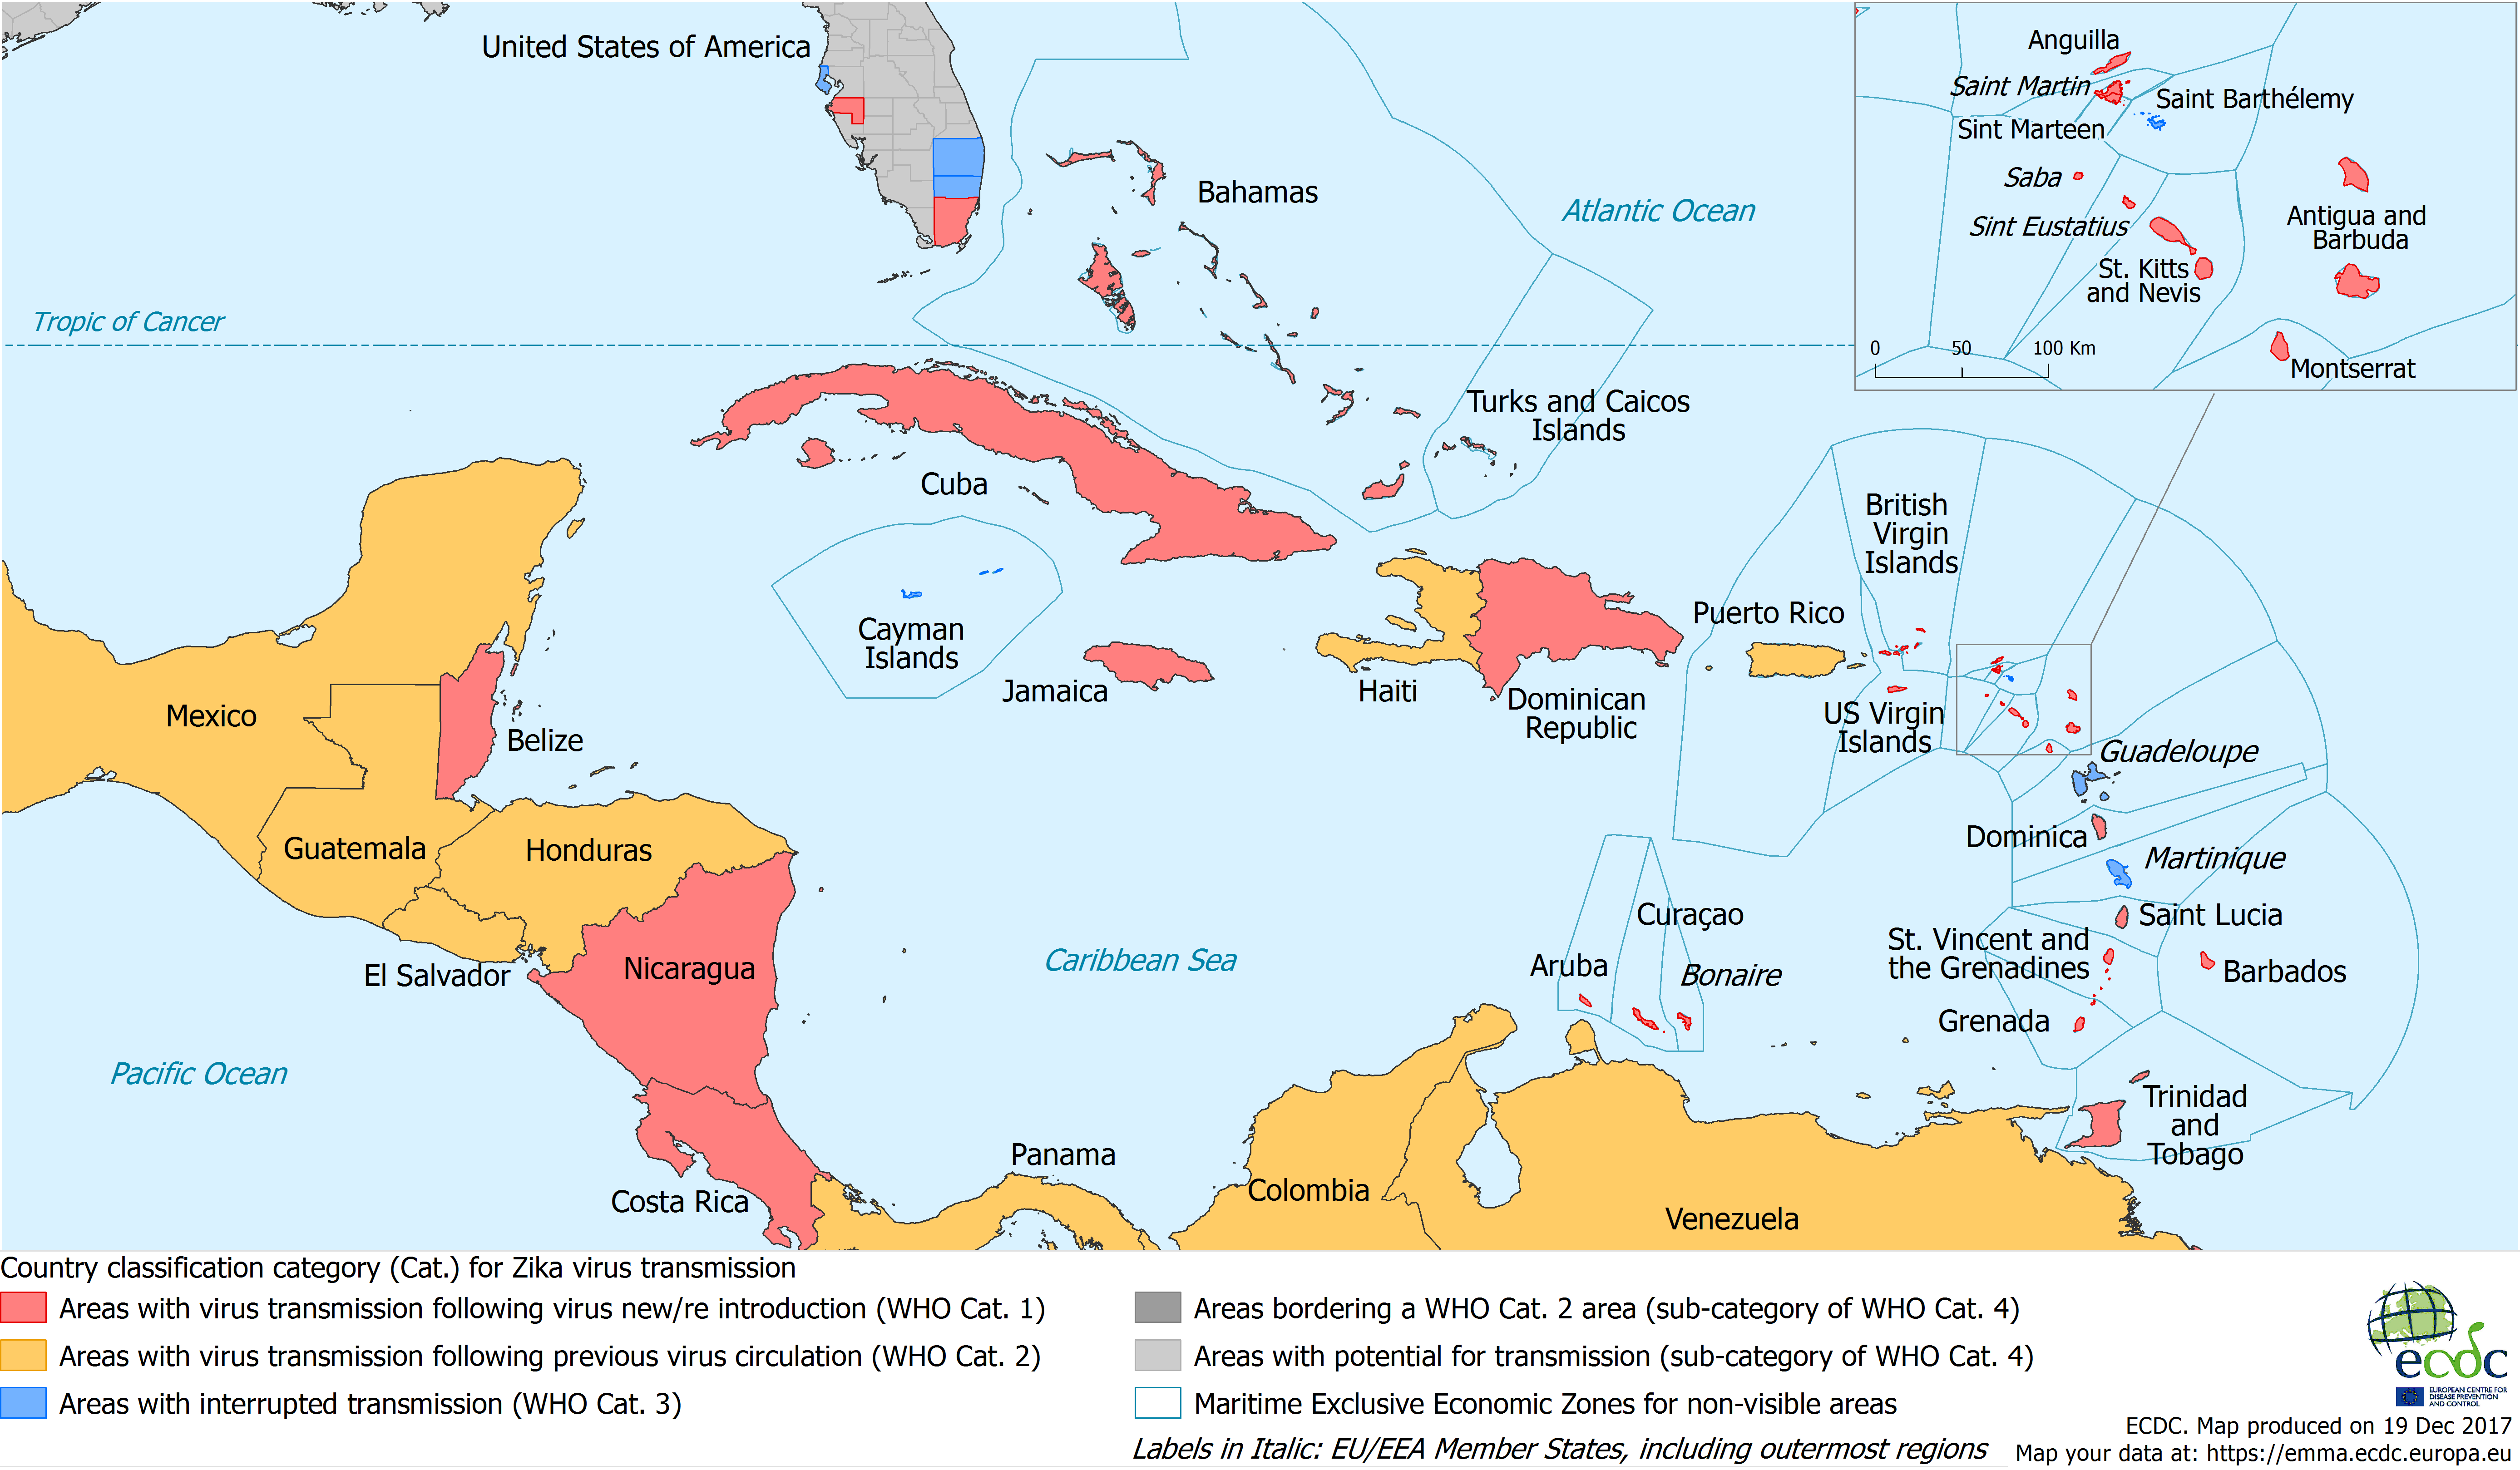 Zika transmission in the Caribbean